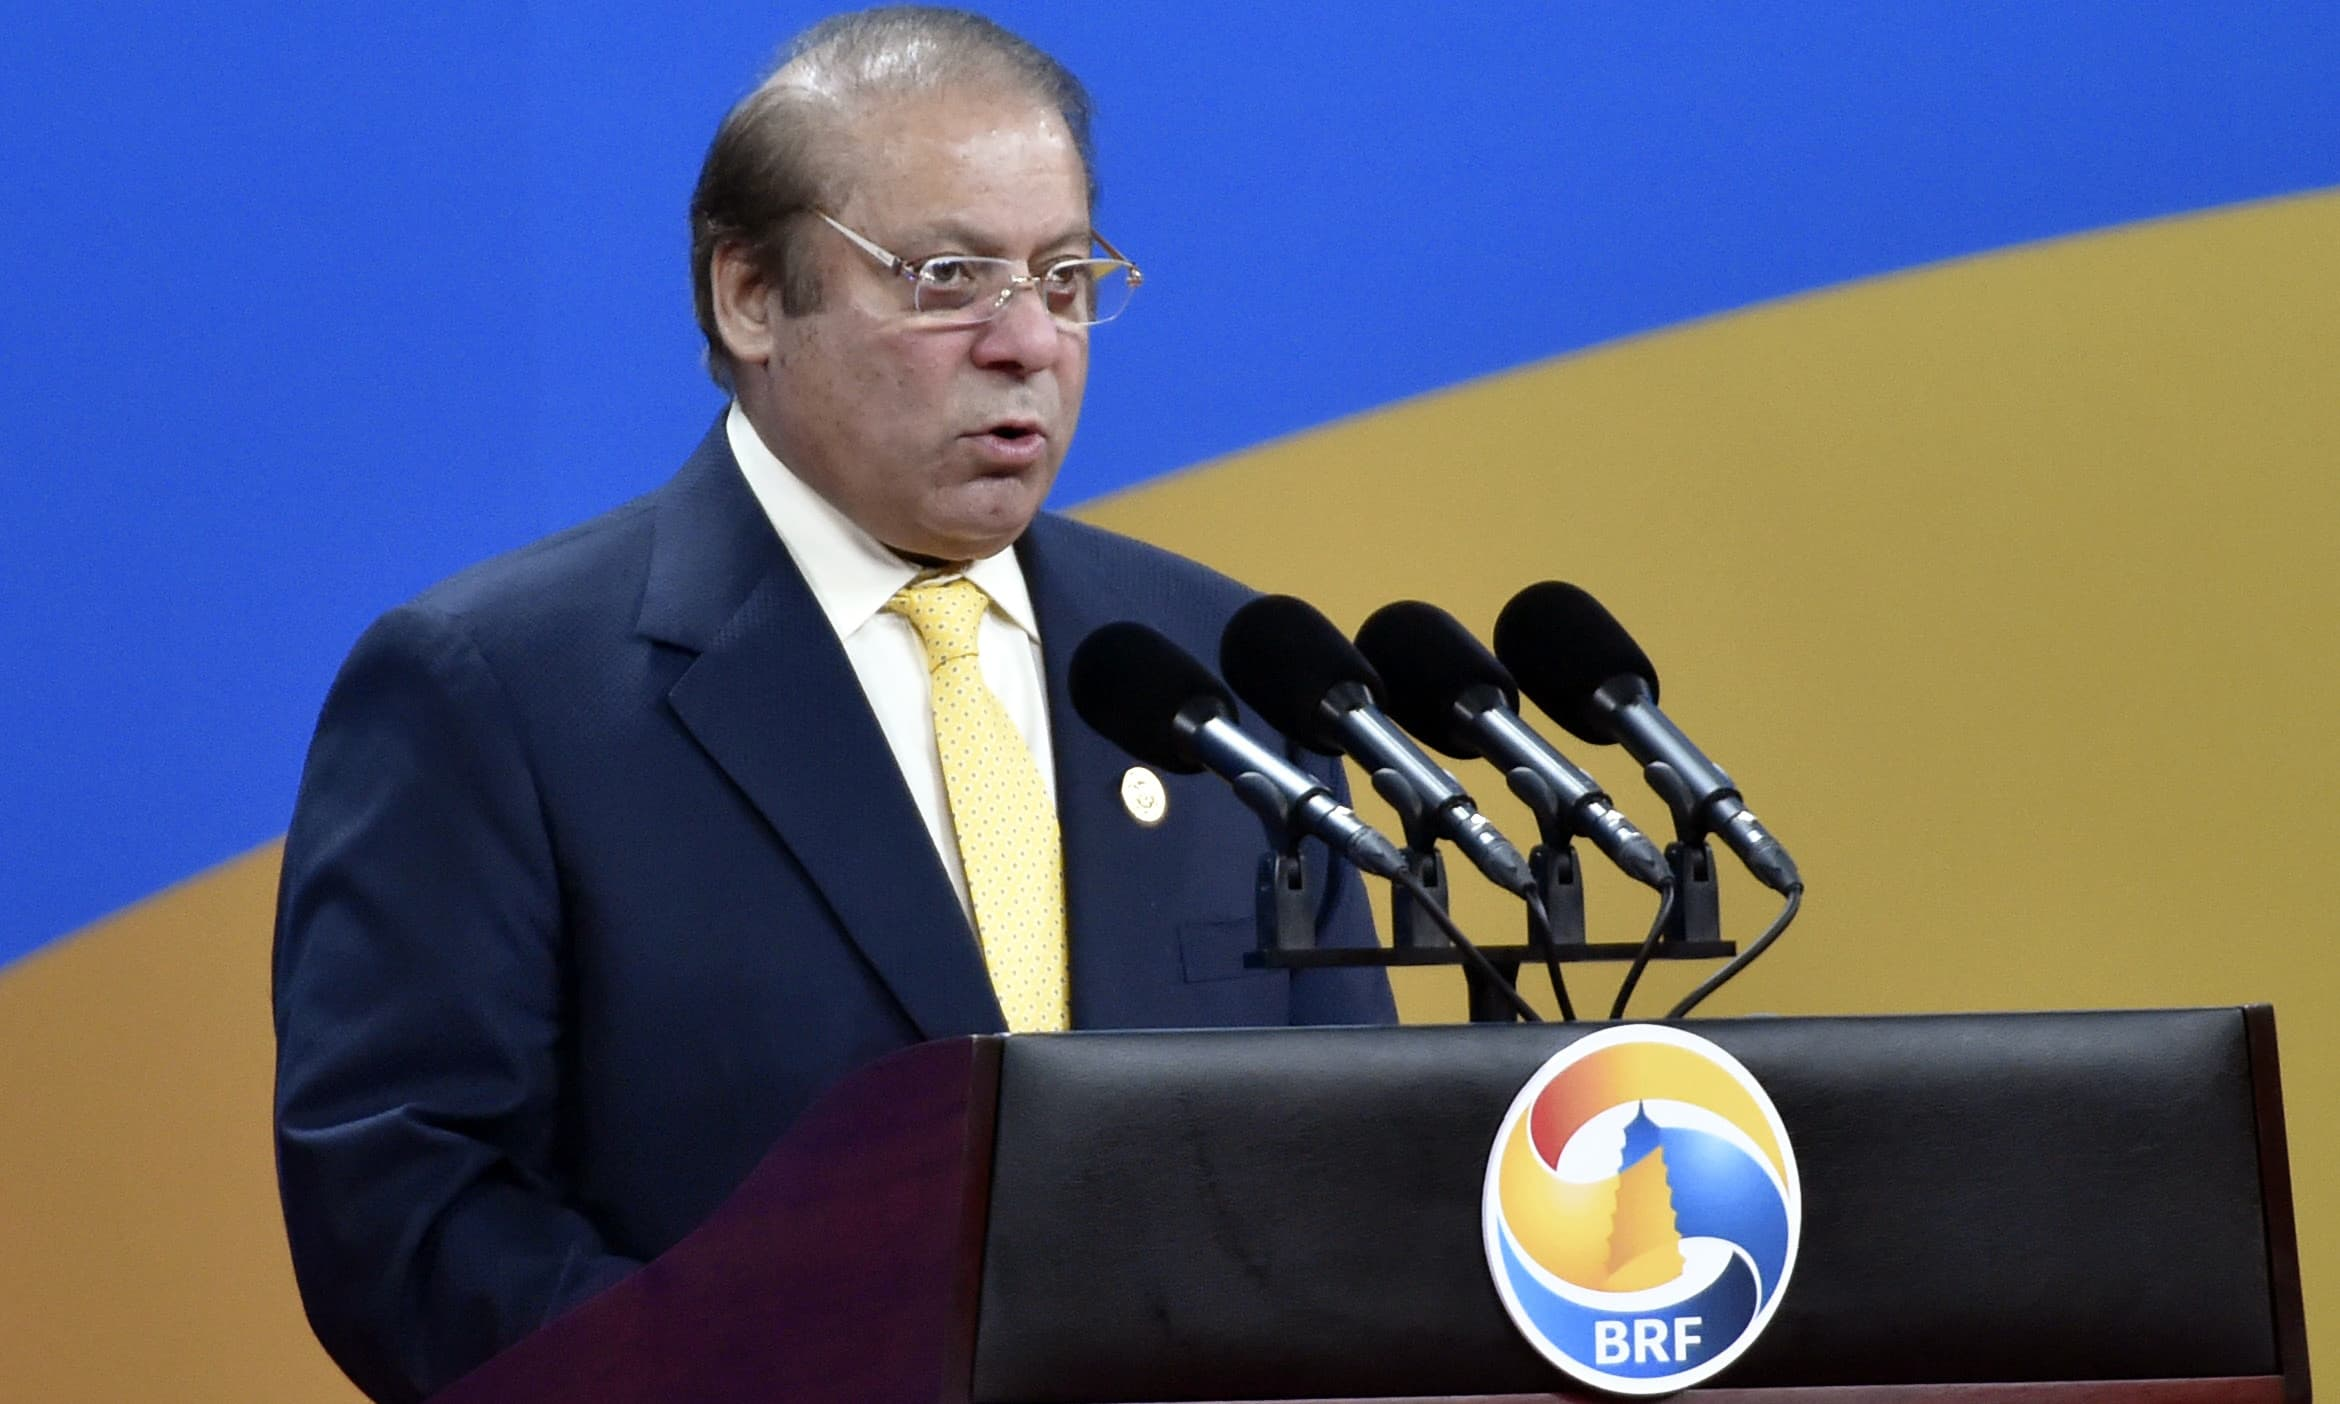 Nawaz Sharif delivers a speech on Plenary Session of High-Level Dialogue, at the Belt and Road Forum in Beijing. —AP